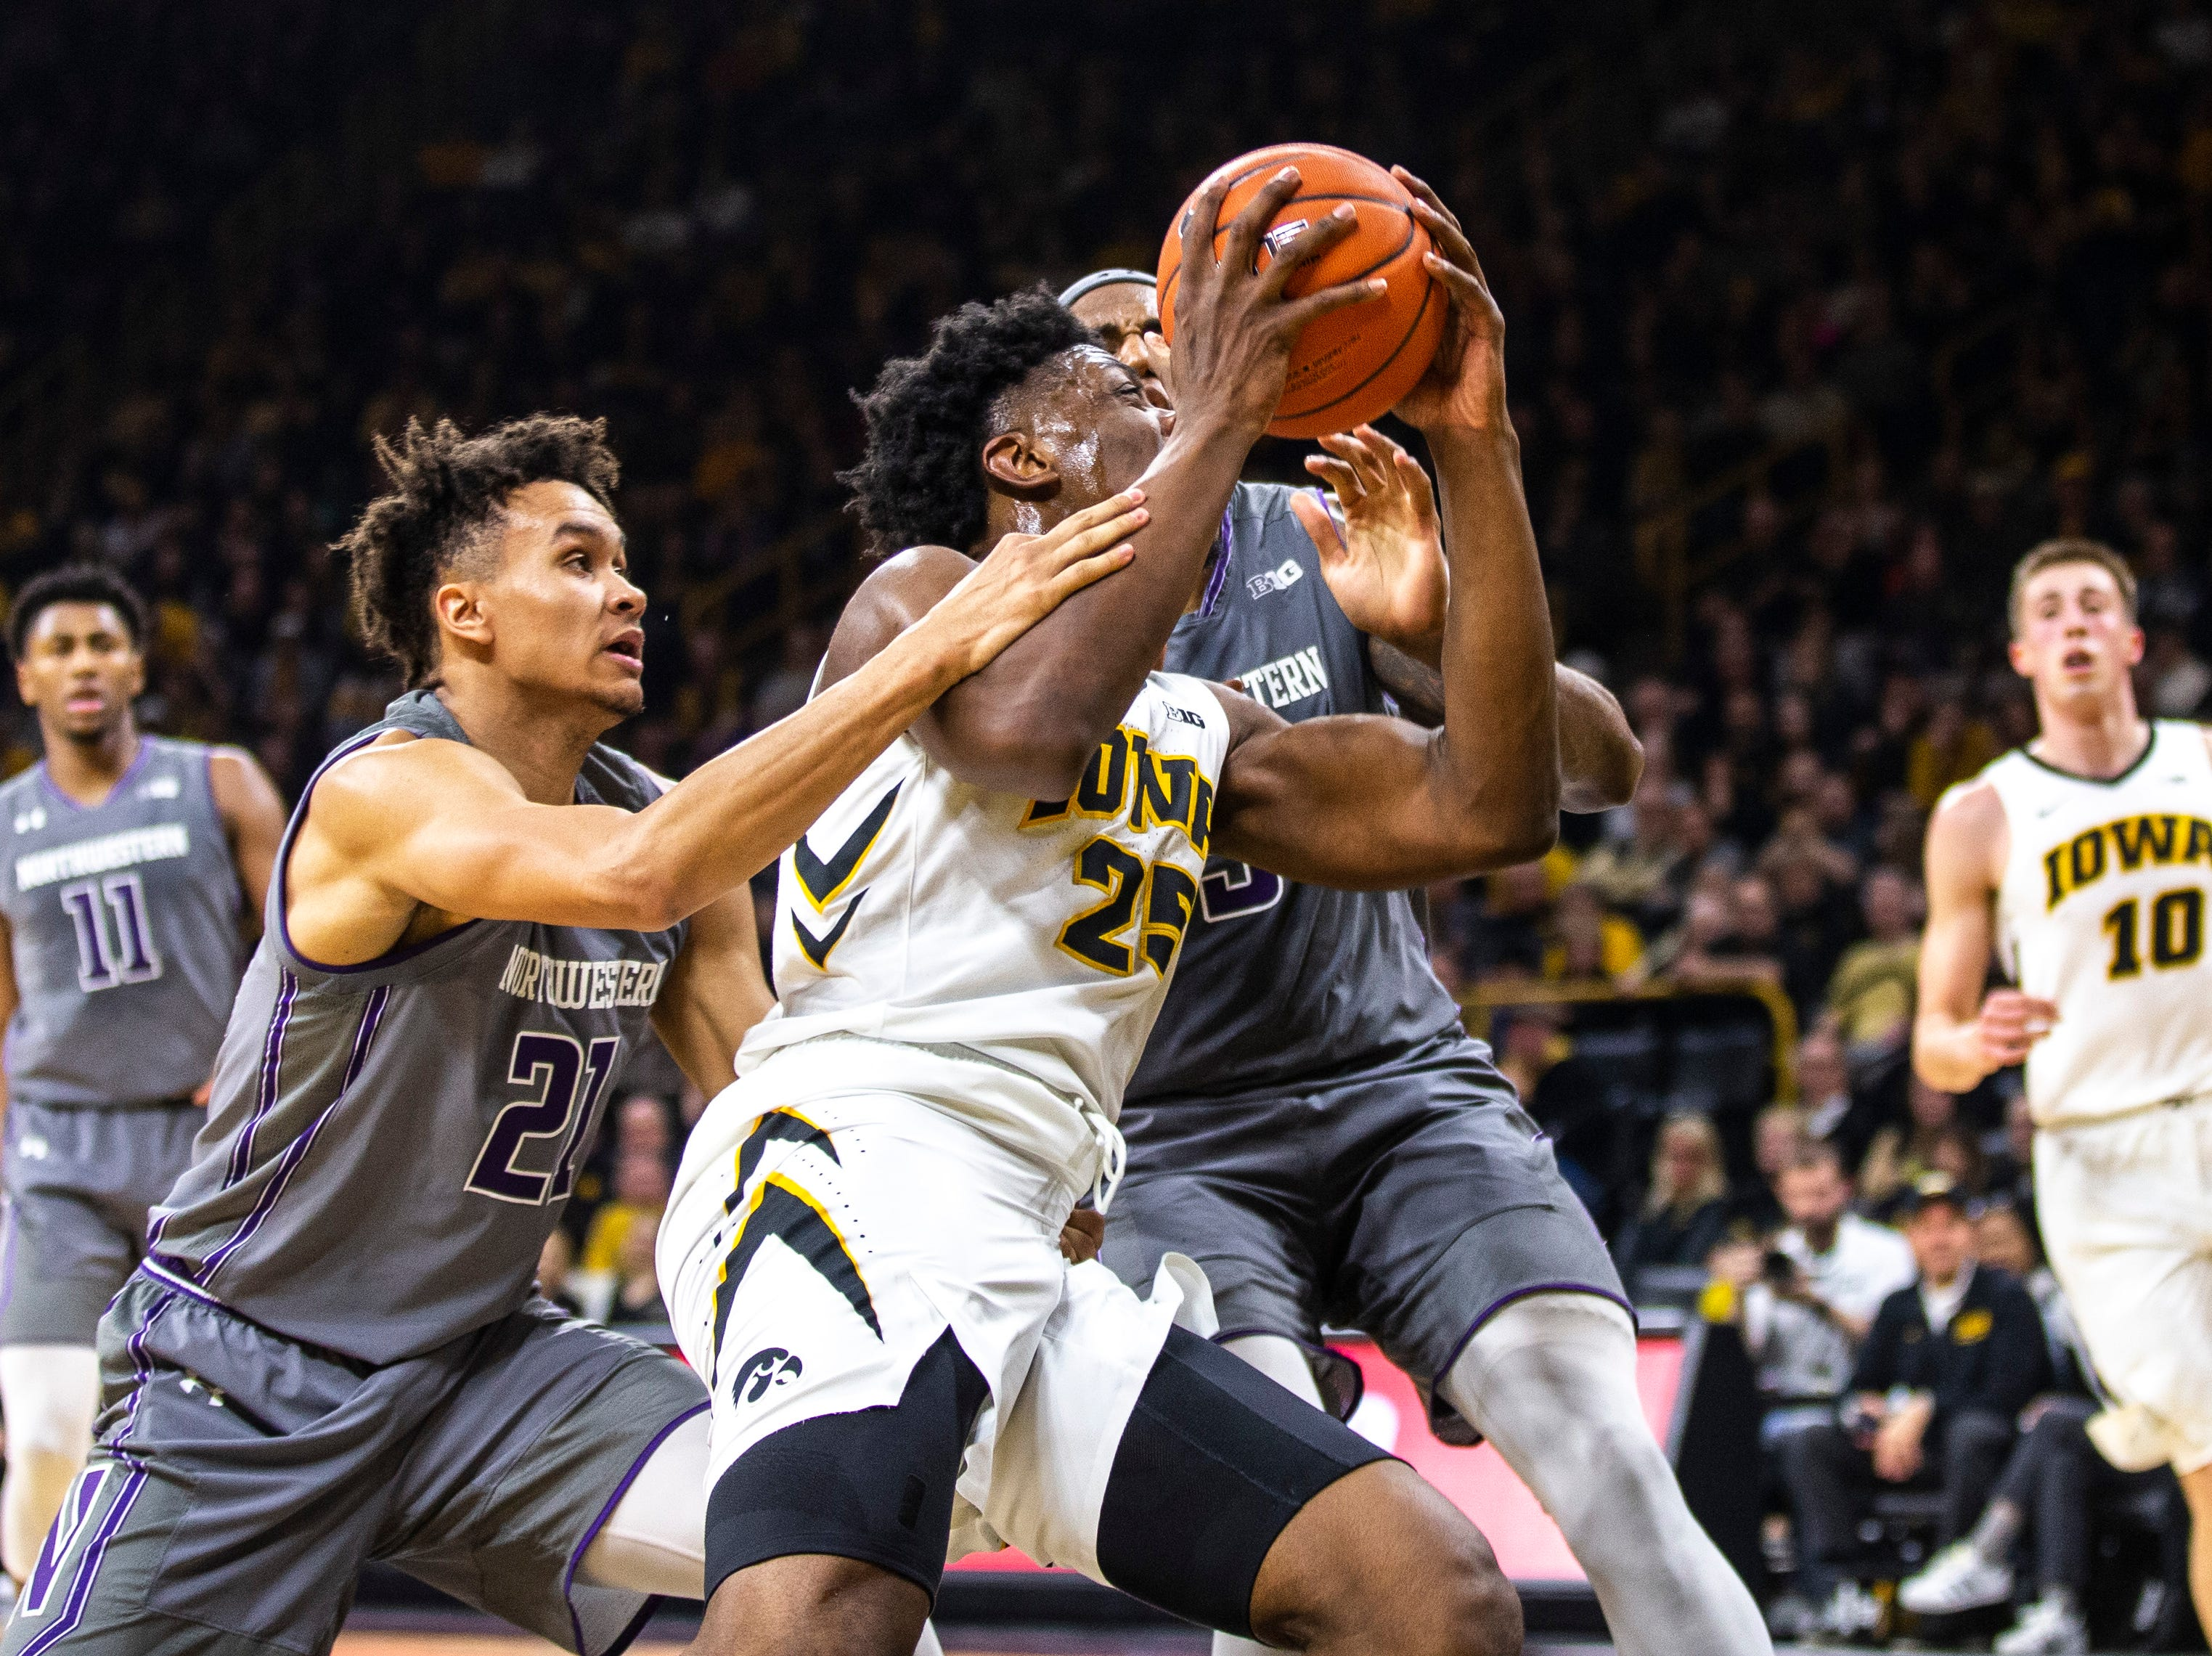 Iowa forward Tyler Cook (25) gets fouled by Northwestern forward A.J. Turner (21) during a NCAA Big Ten Conference men's basketball game on Sunday, Feb. 10, 2019 at Carver-Hawkeye Arena in Iowa City, Iowa.